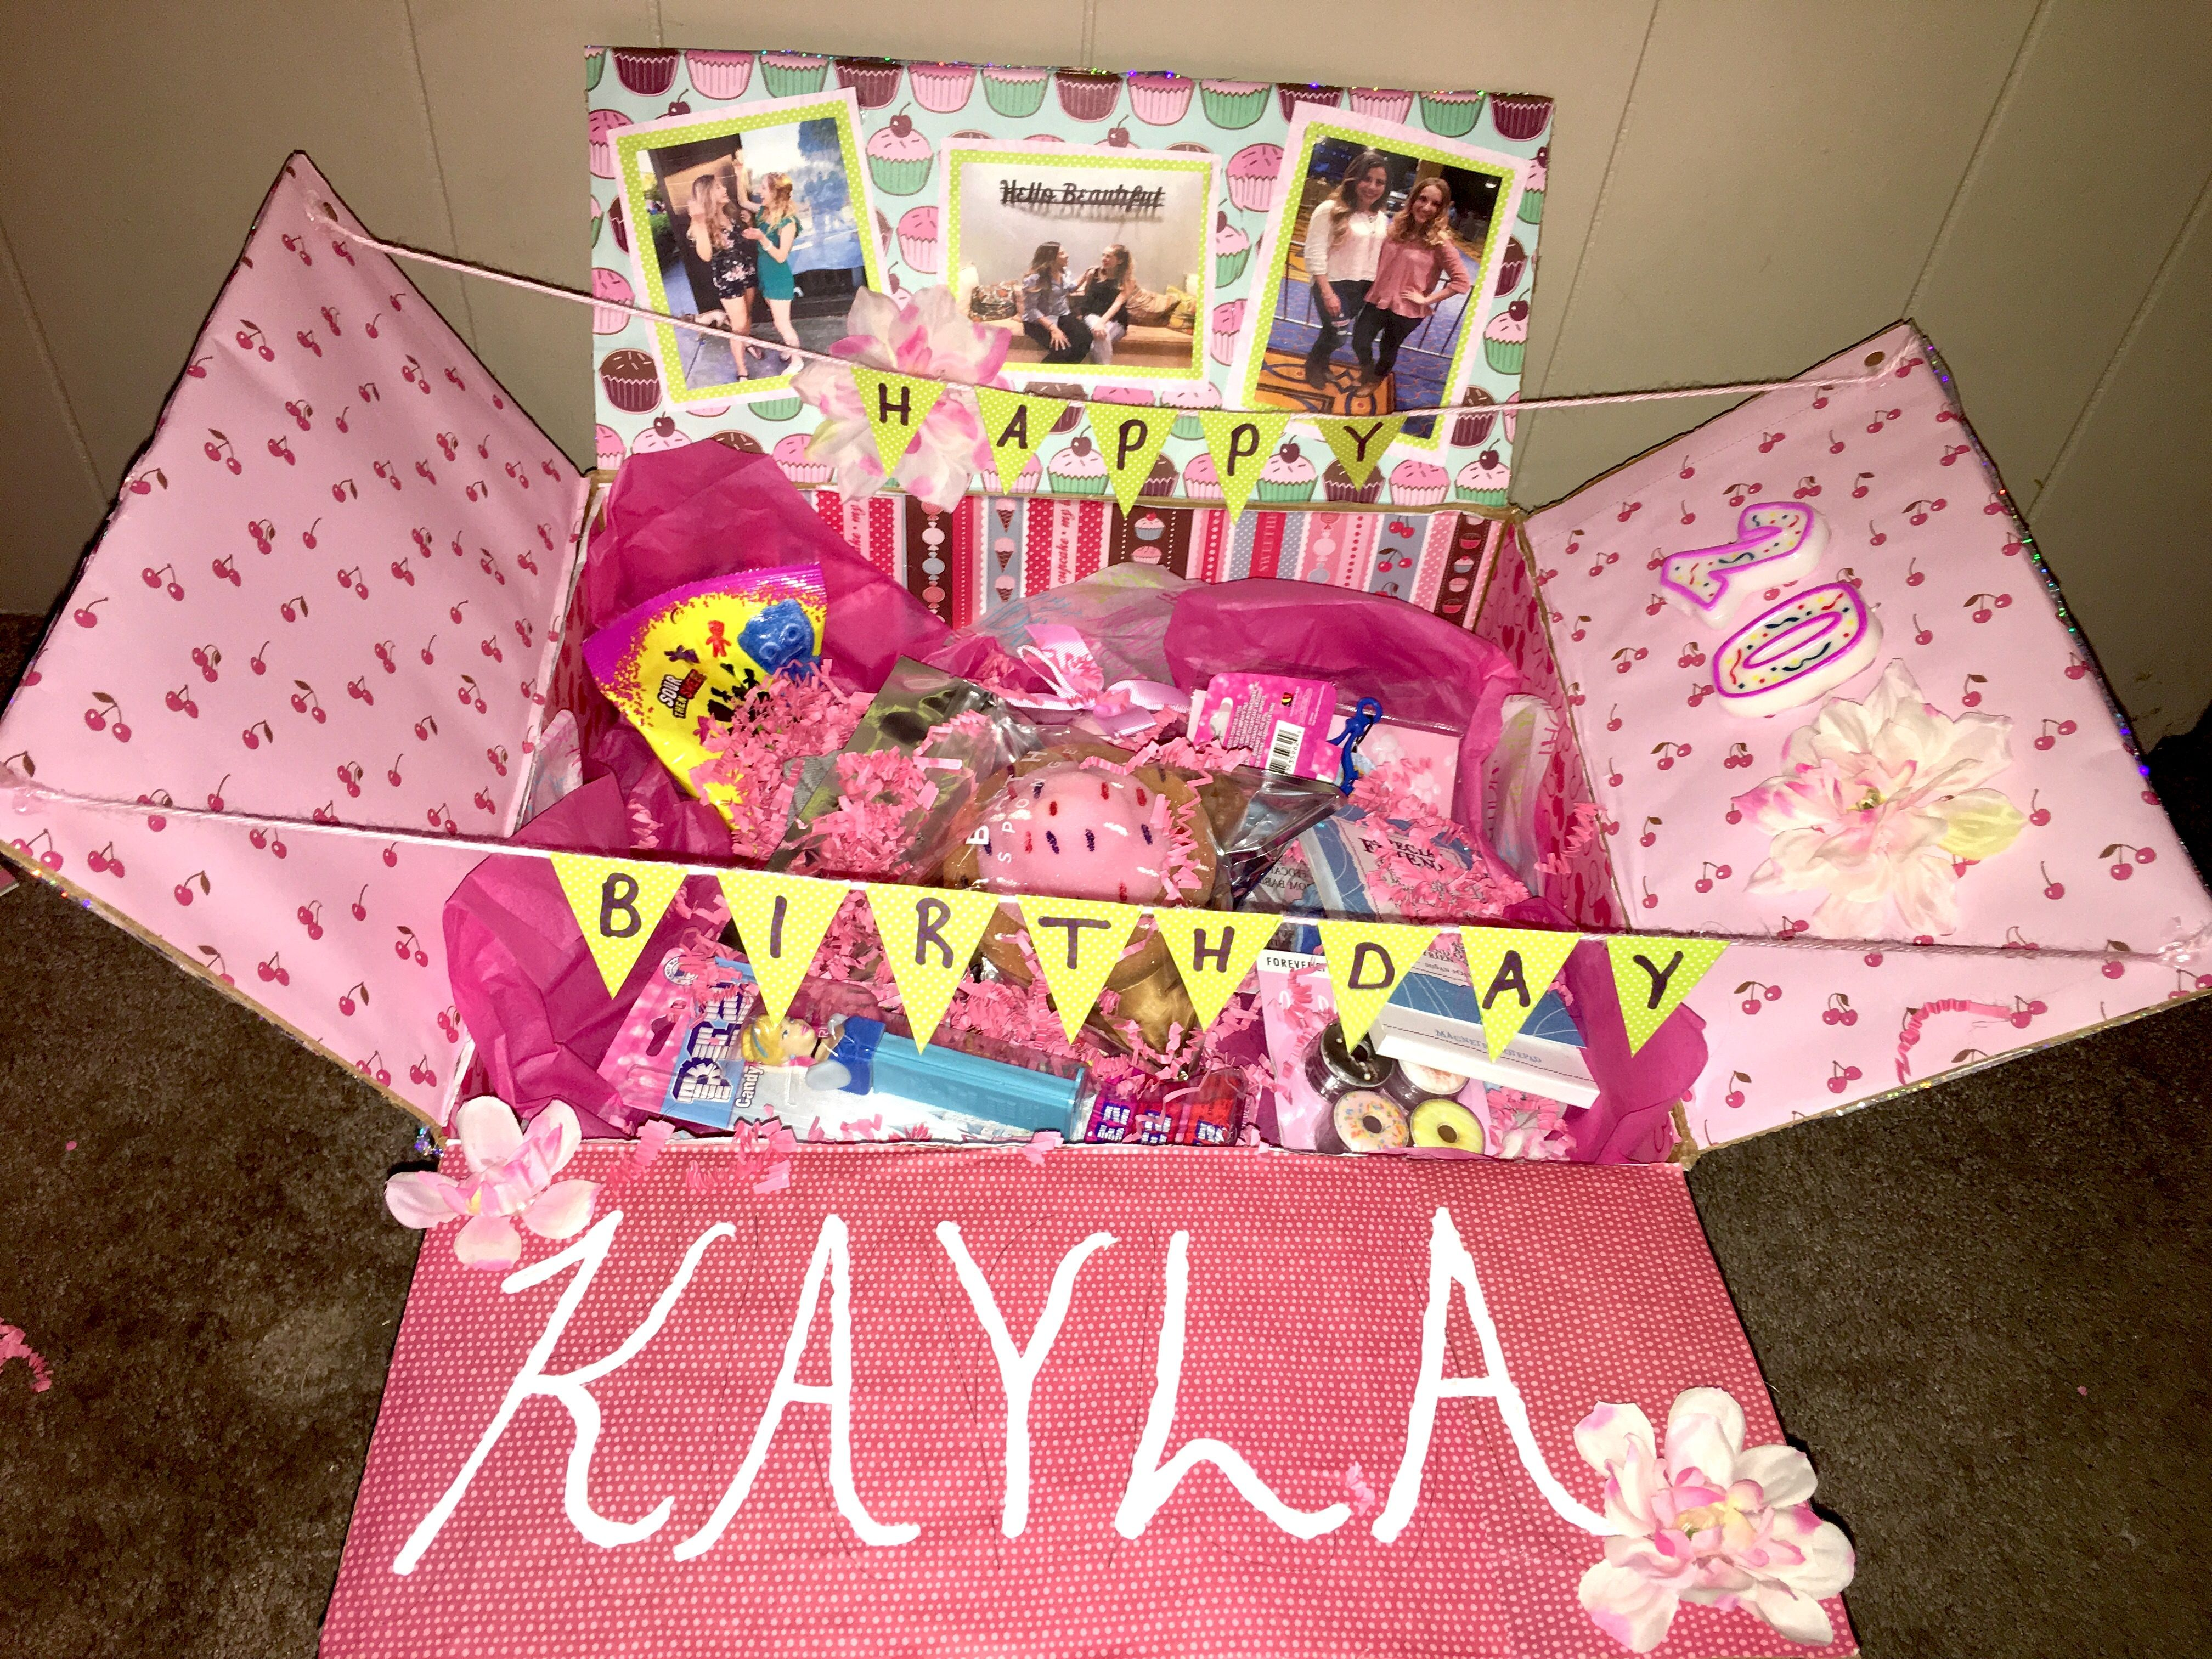 Open When Letters For My Best Friends Birthday Its A Great Gift Boyfriend Or Friend On The Side Of Box Made List Instructi